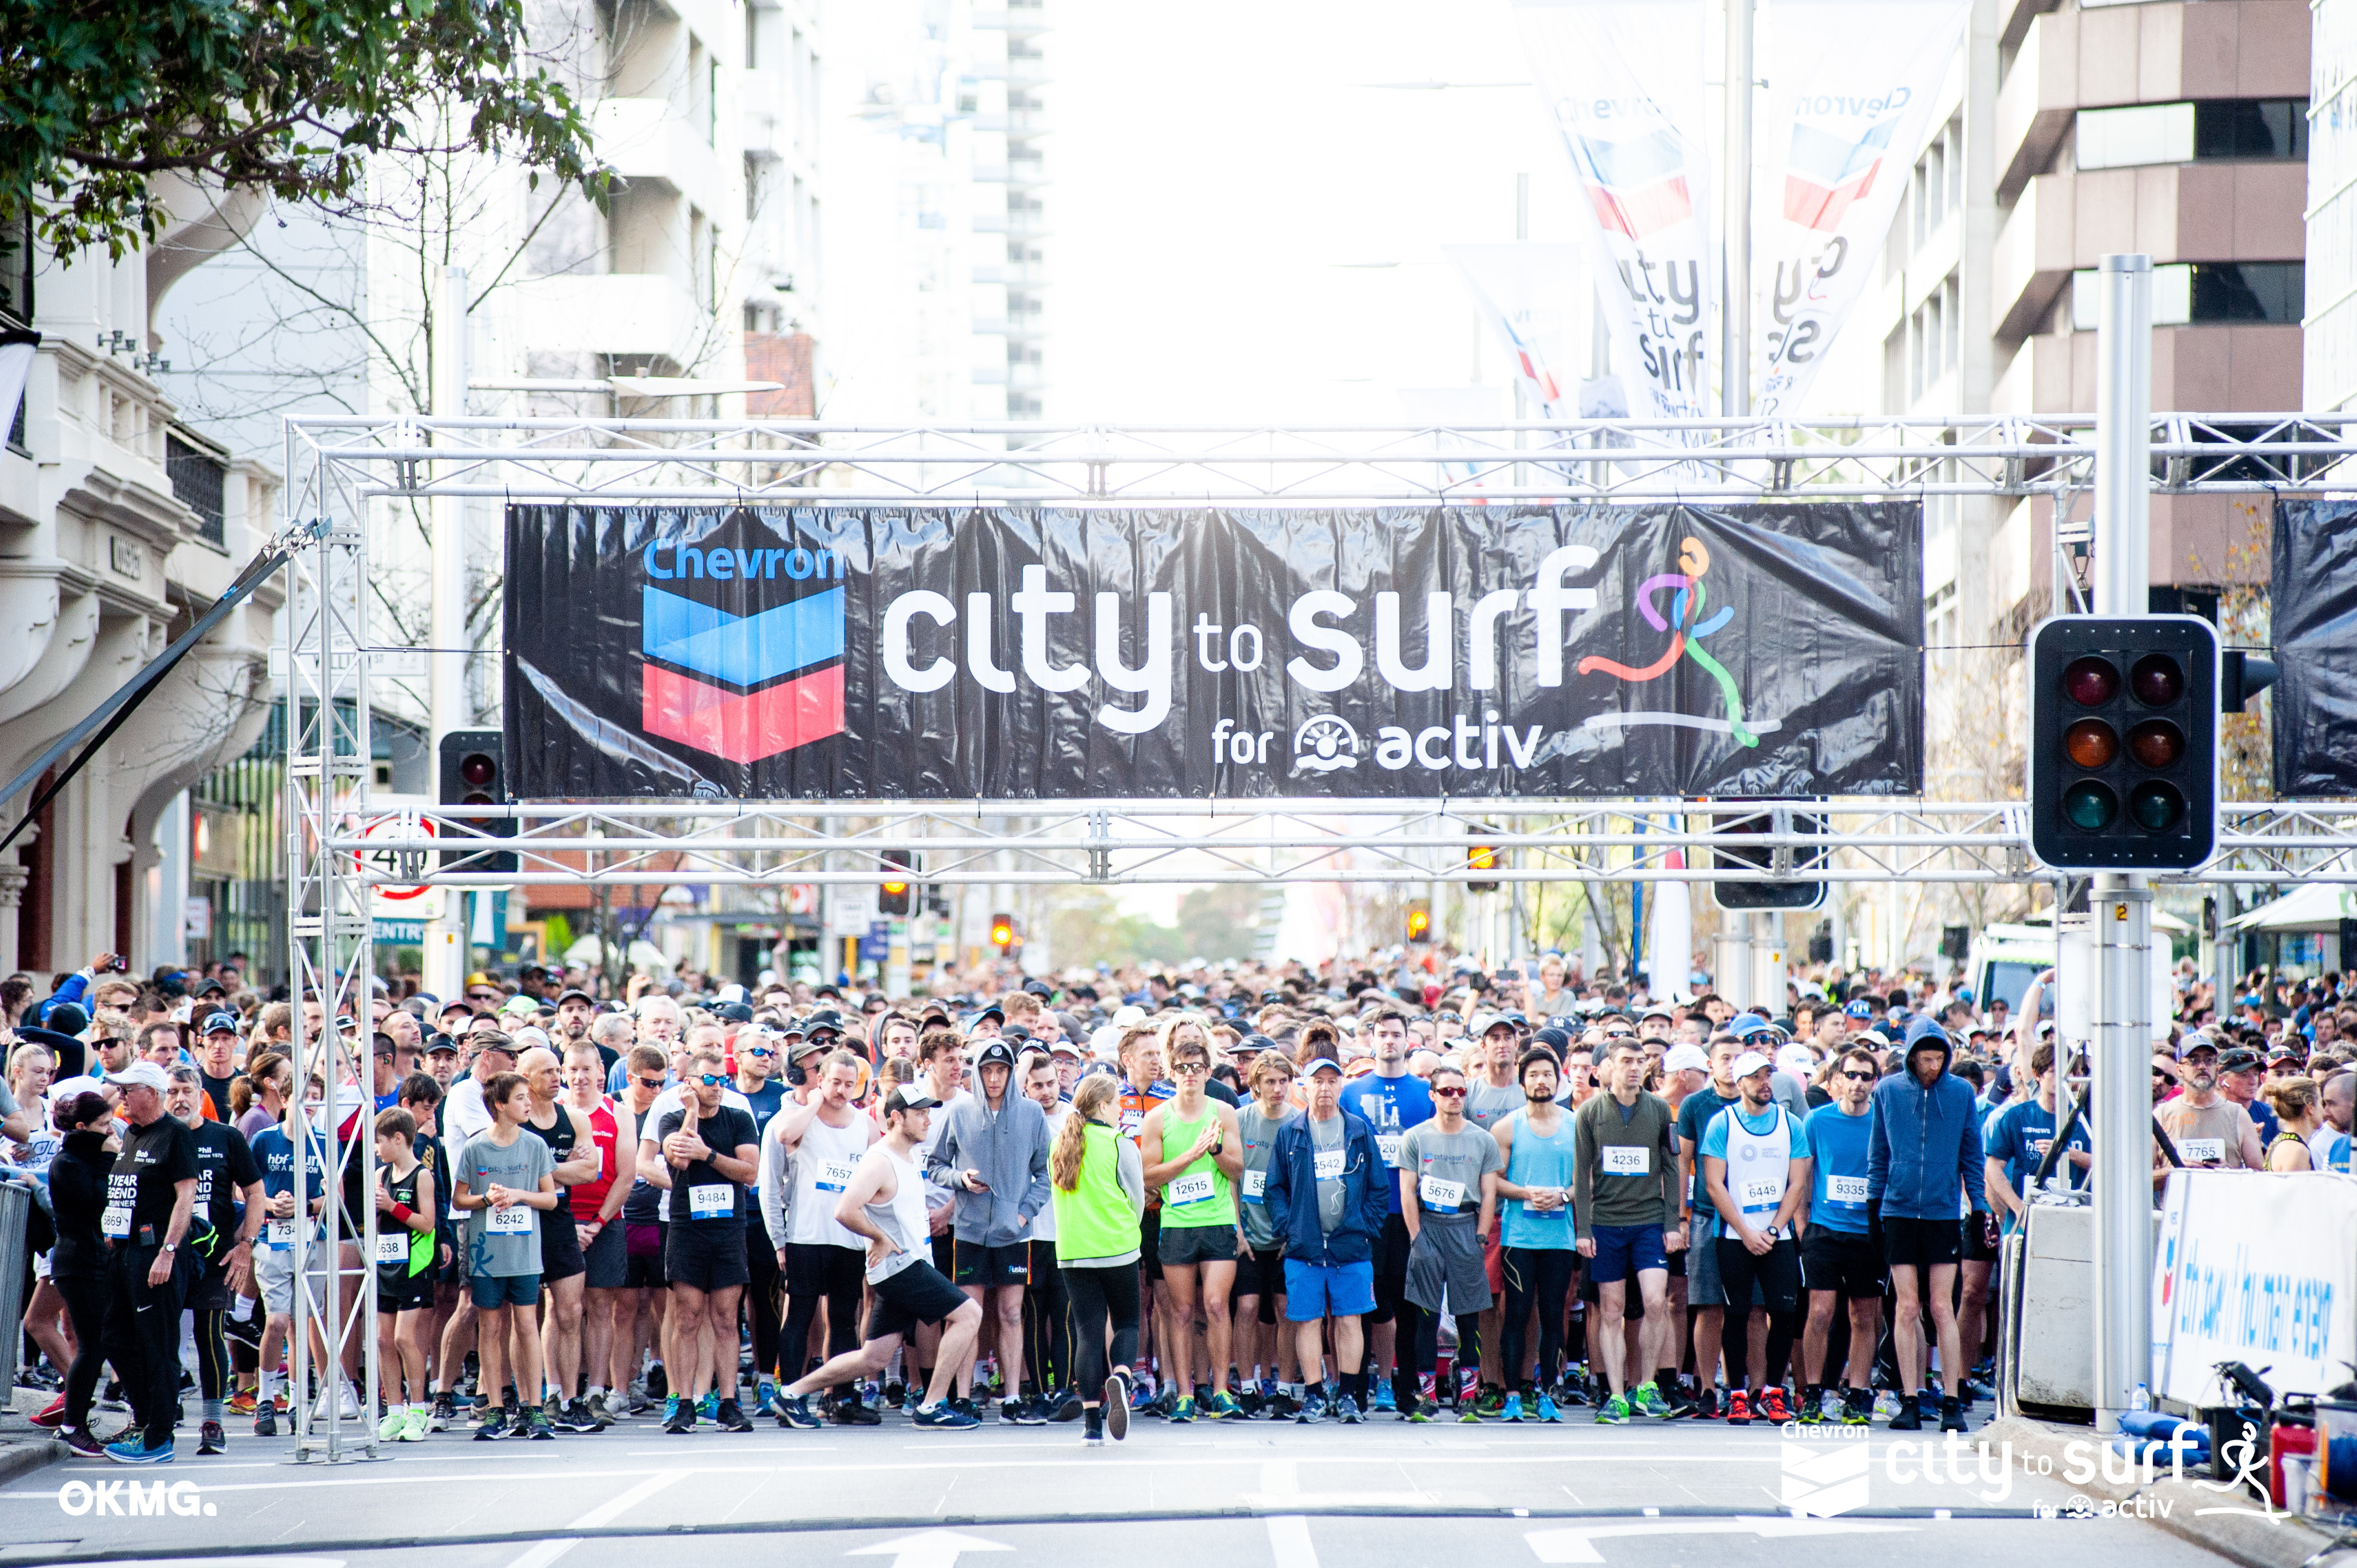 2020 Chevron City to Surf for Activ cancelled